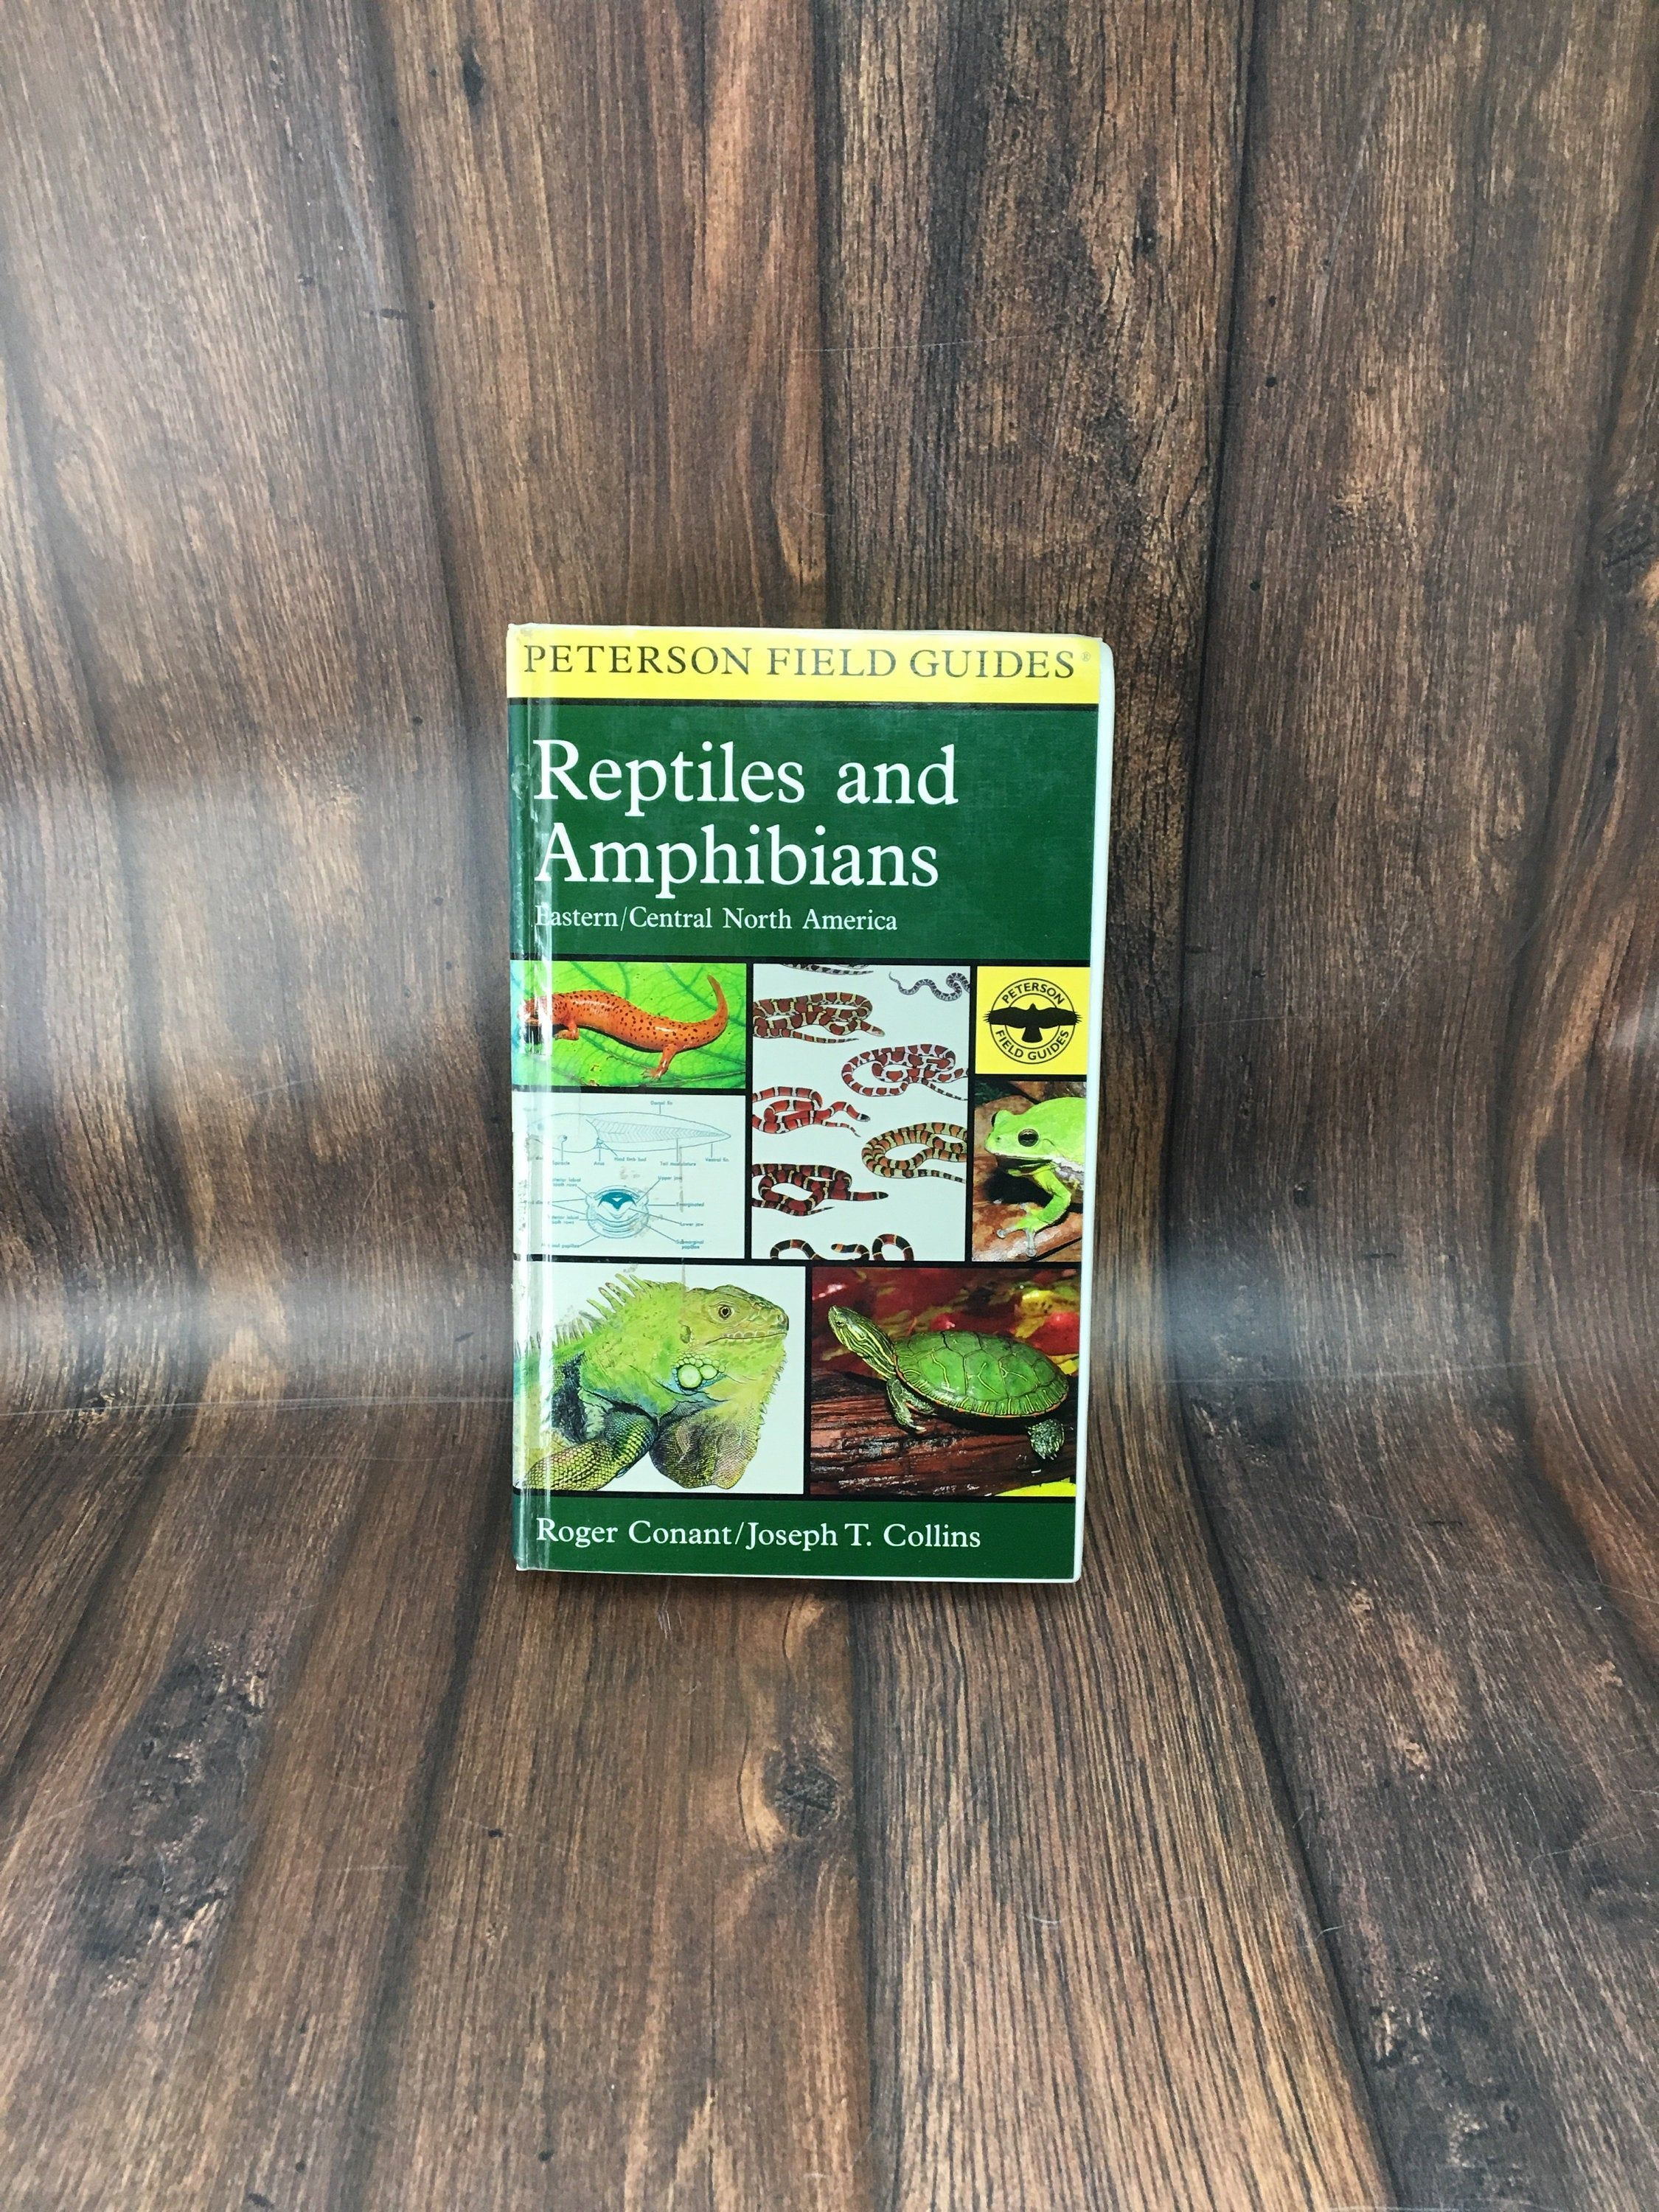 1998 Peterson Field Guides Reptiles And Amphibians Eastern Central North America Roger Conant Illustrations Color Plates Herpetology Amphibians Central